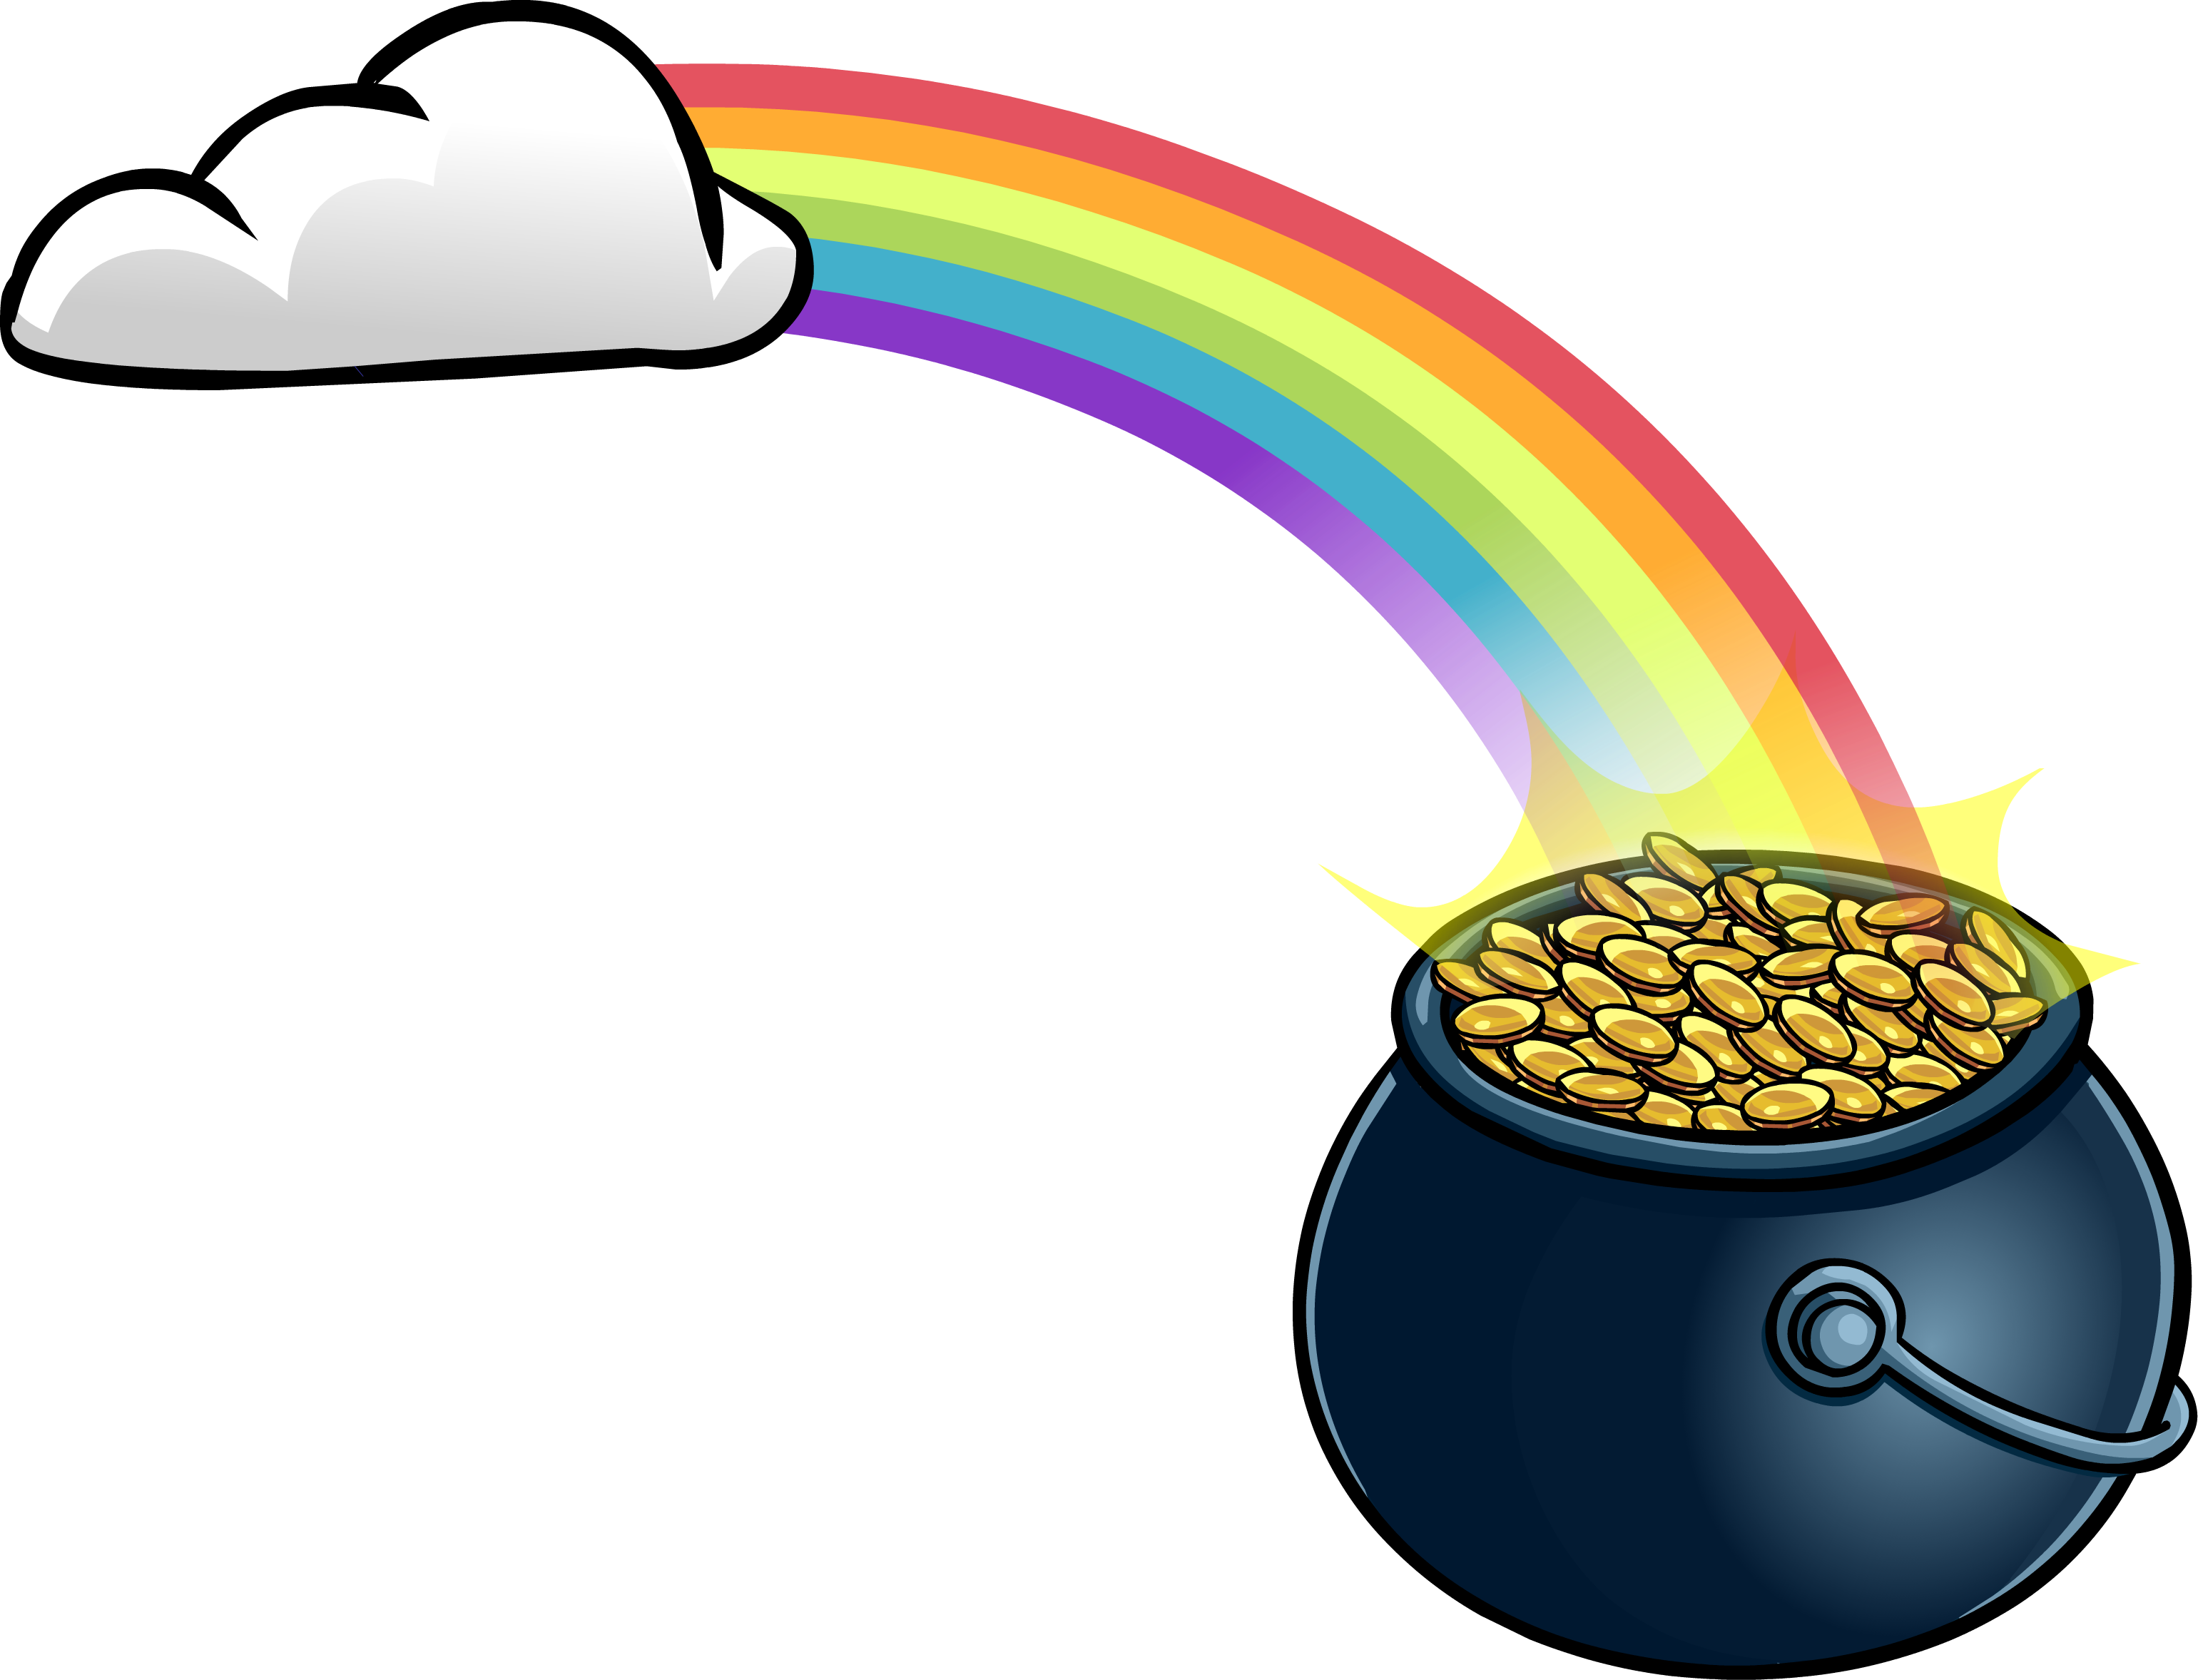 pot of gold rainbow clipart free download best pot of St Patrick's Day Pot of Gold Clip Art Pot of Gold Clip Art